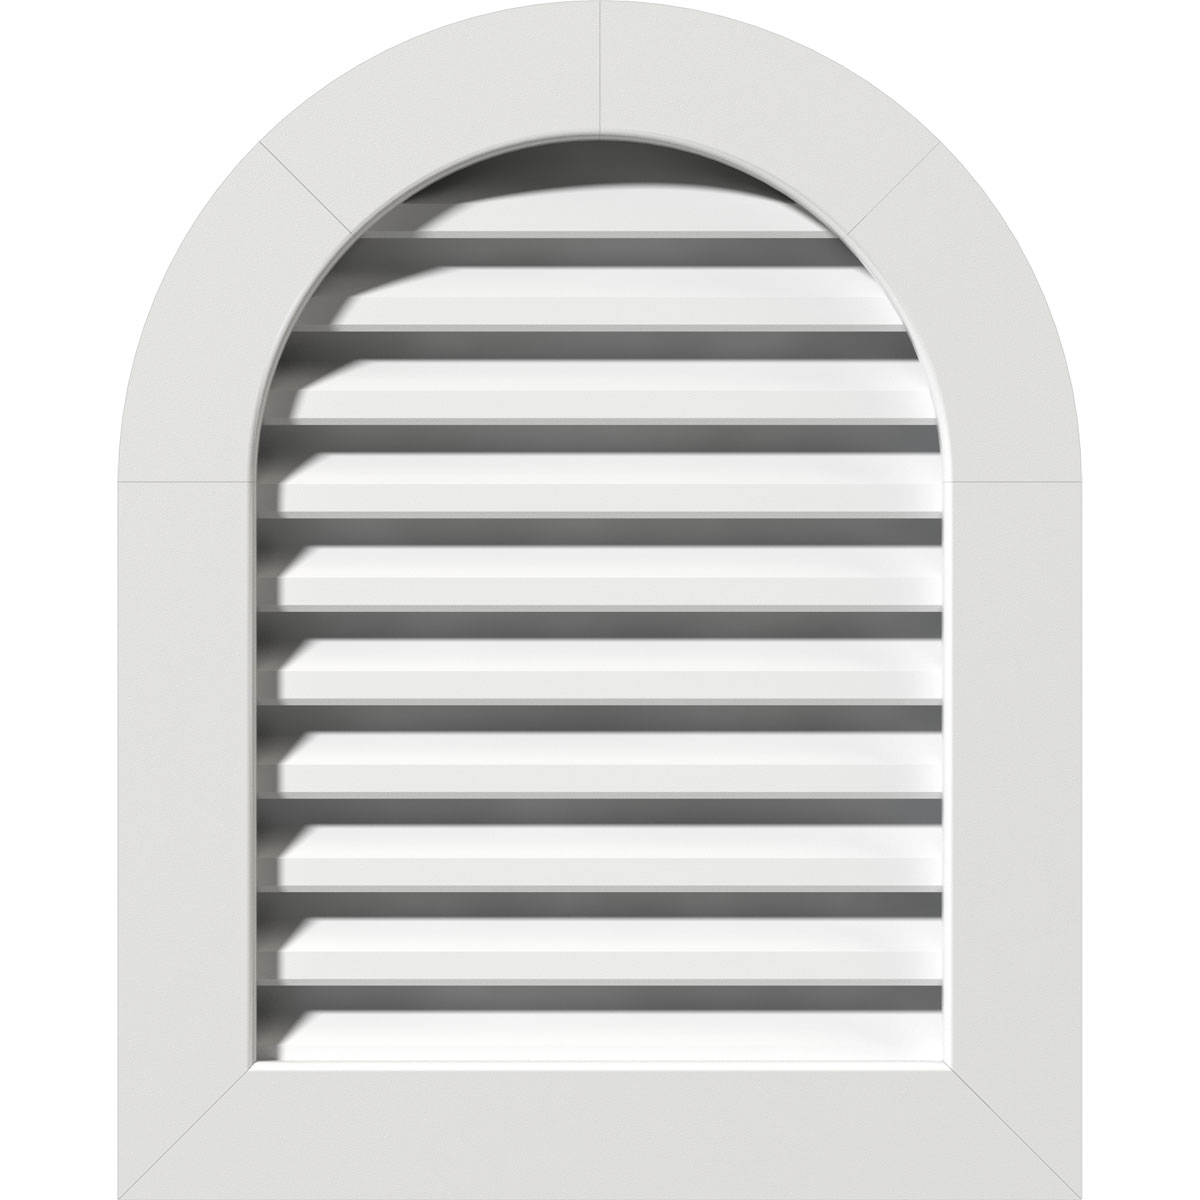 "14""W x 20""H Round Top Gable Vent (19""W x 25""H Frame Size): Unfinished, Functional, PVC Gable Vent w/ 1"" x 4"" Flat Trim Frame"